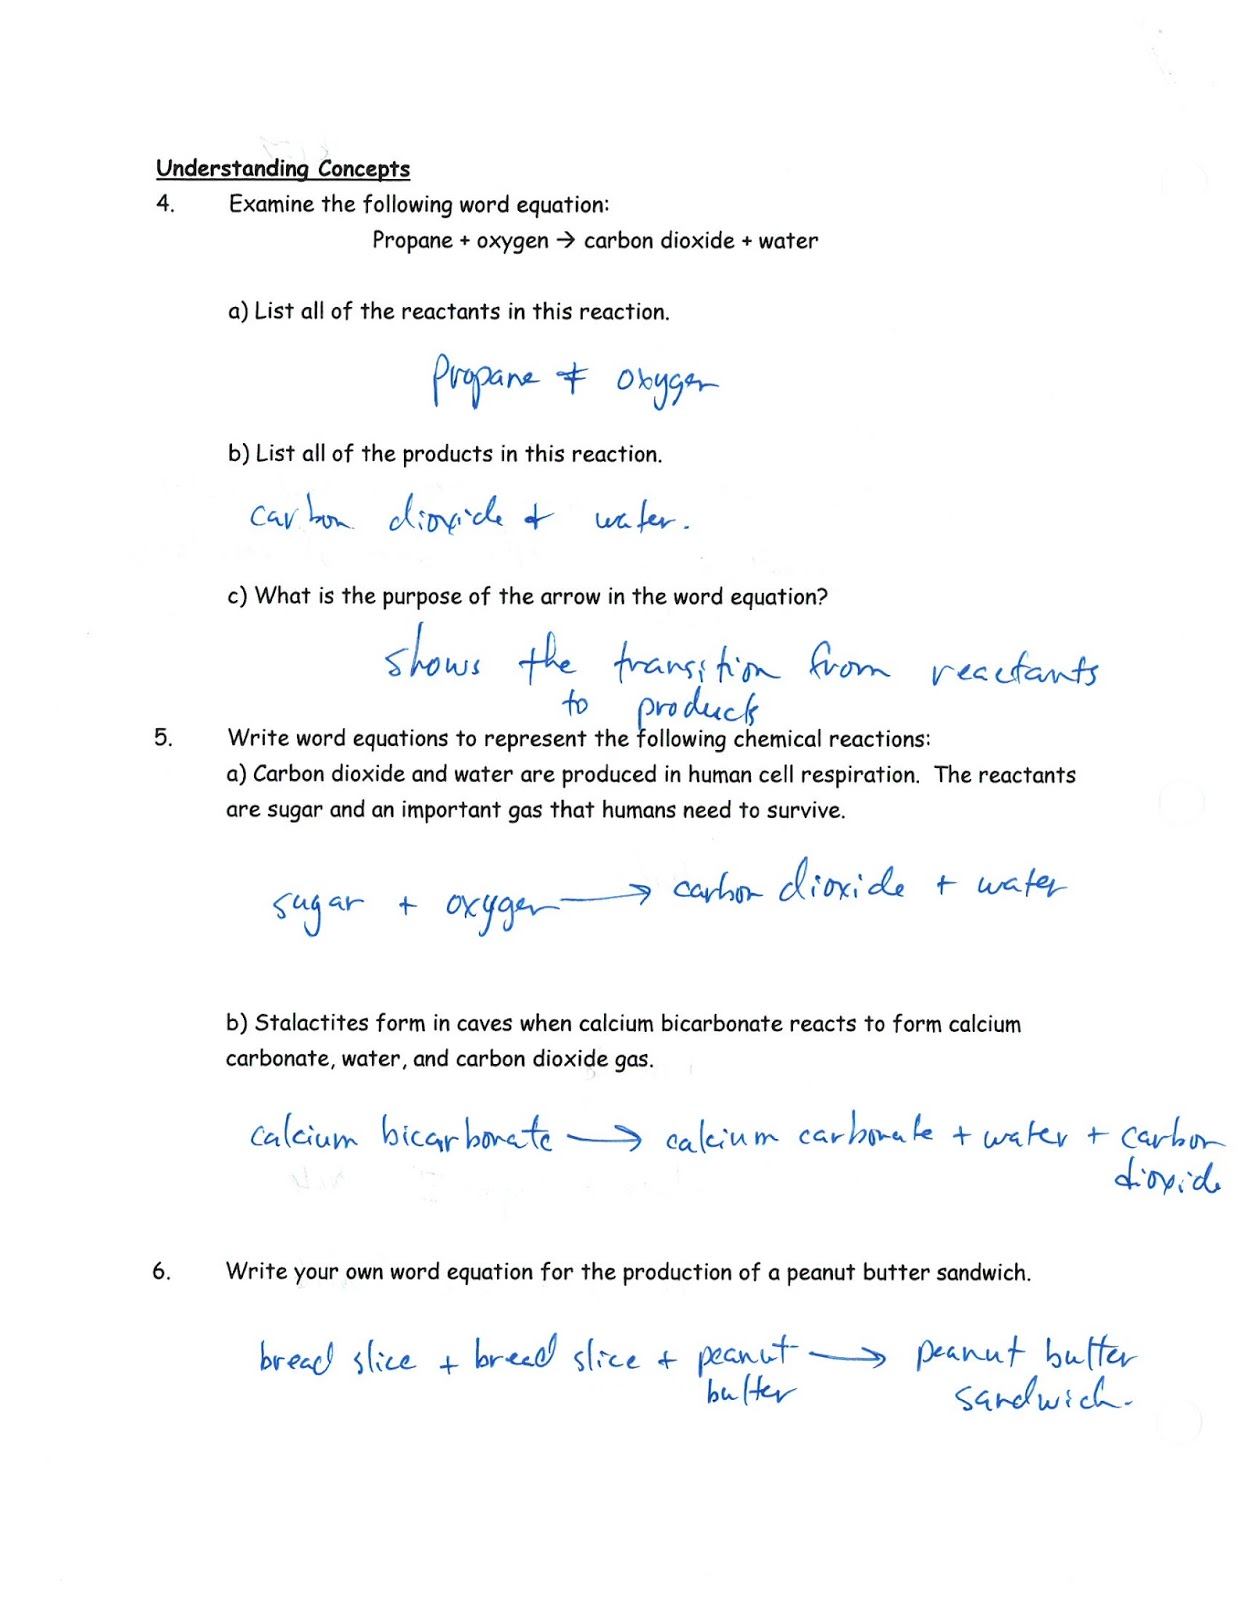 Mr Kaspricks Science 10 Class CR3 Represent chemical reactions – Chemistry Word Equations Worksheet Answers